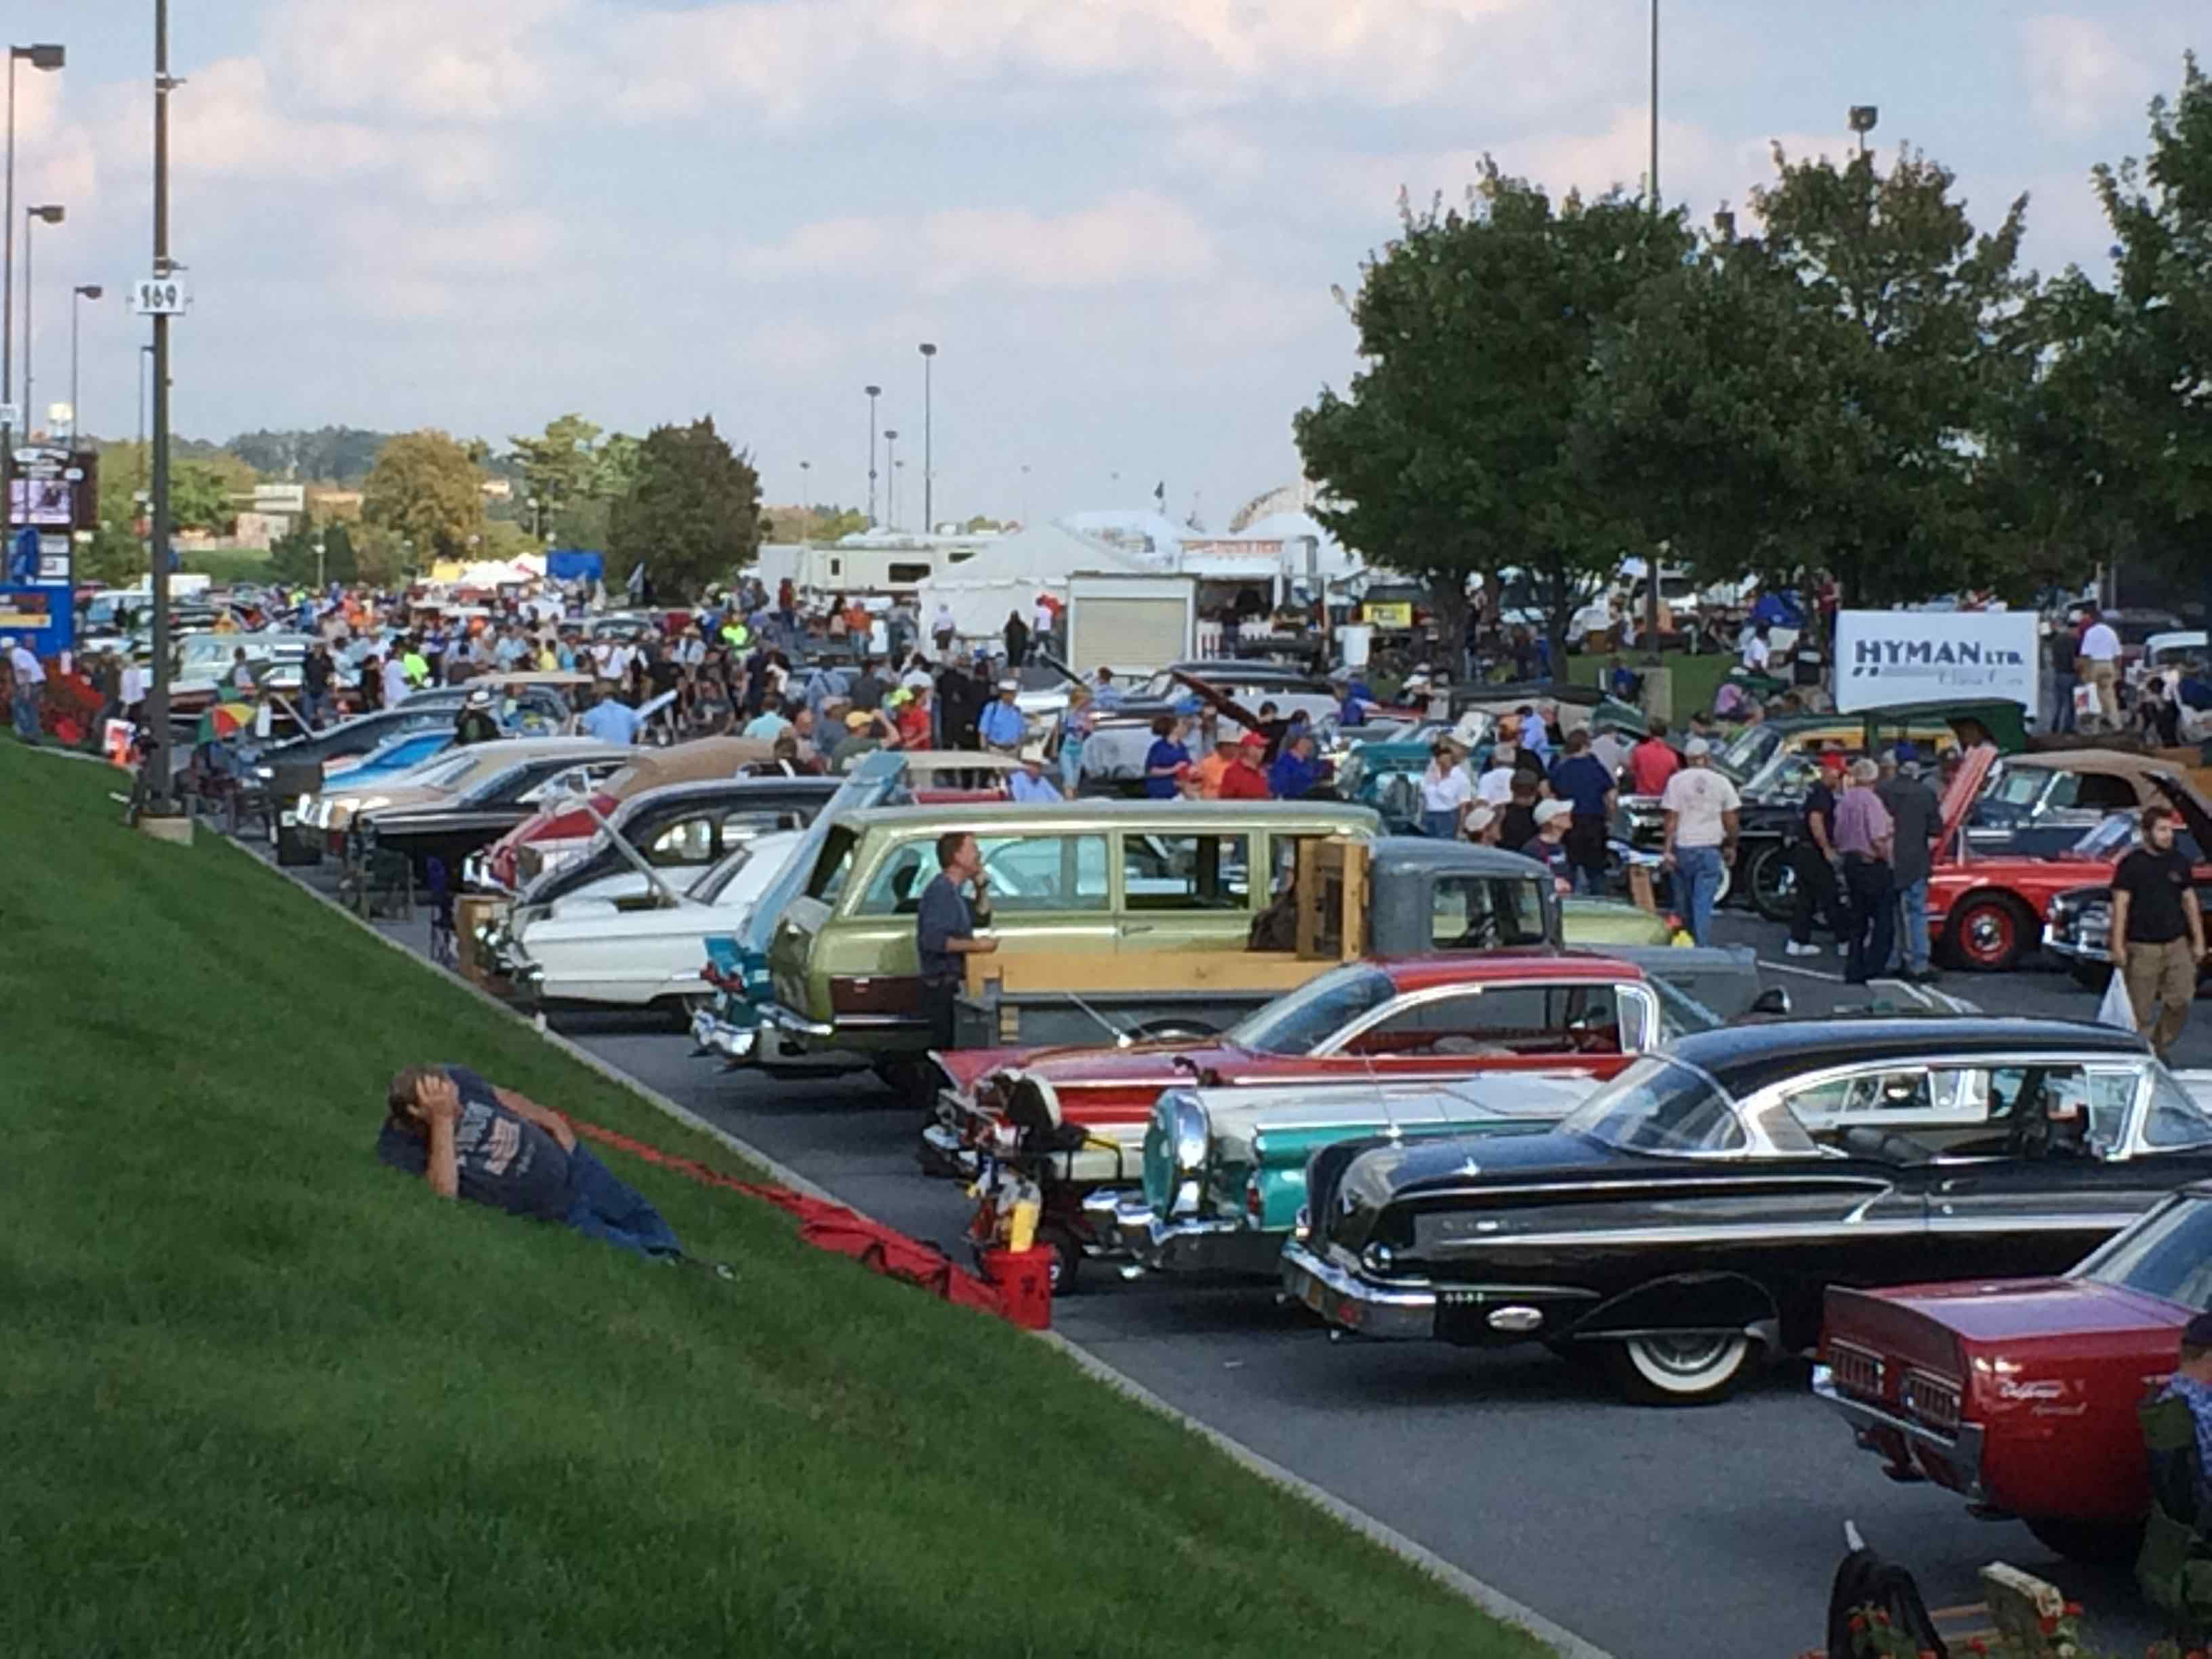 Big American Classics Rule At The Rm Hershey Auction